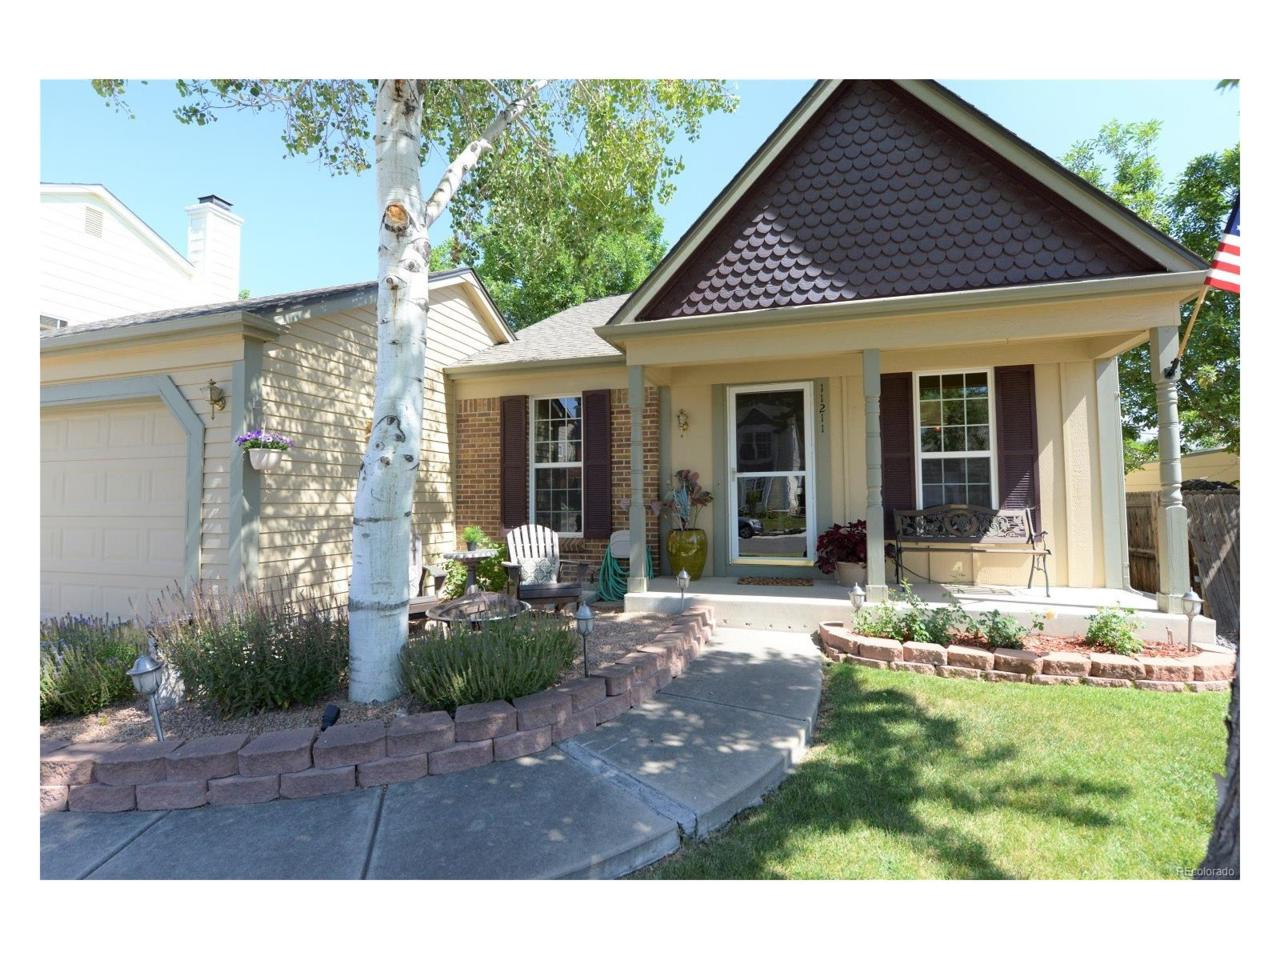 11211 W 104th Drive, Westminster, CO 80021 (MLS #4373210) :: 8z Real Estate